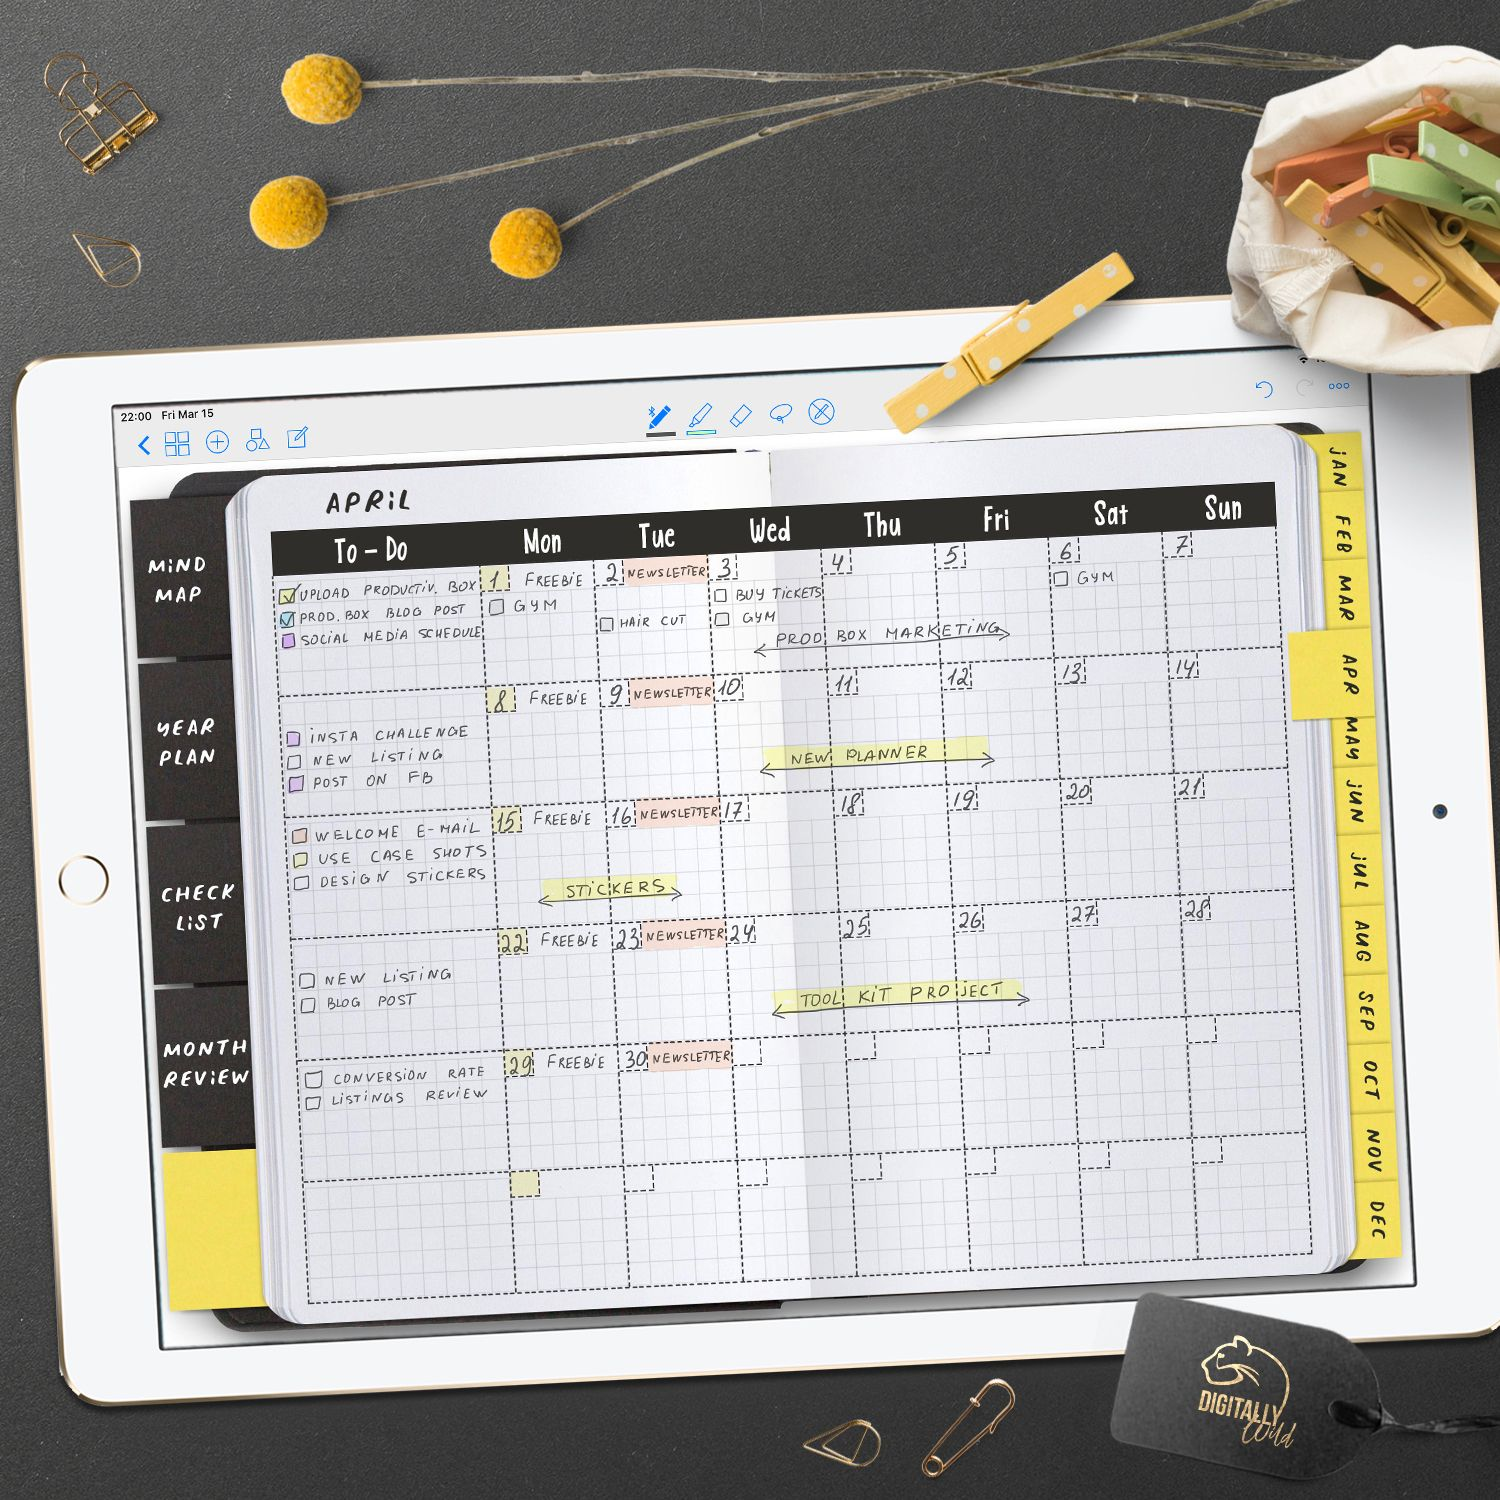 Digital Project planner with time blocking technic